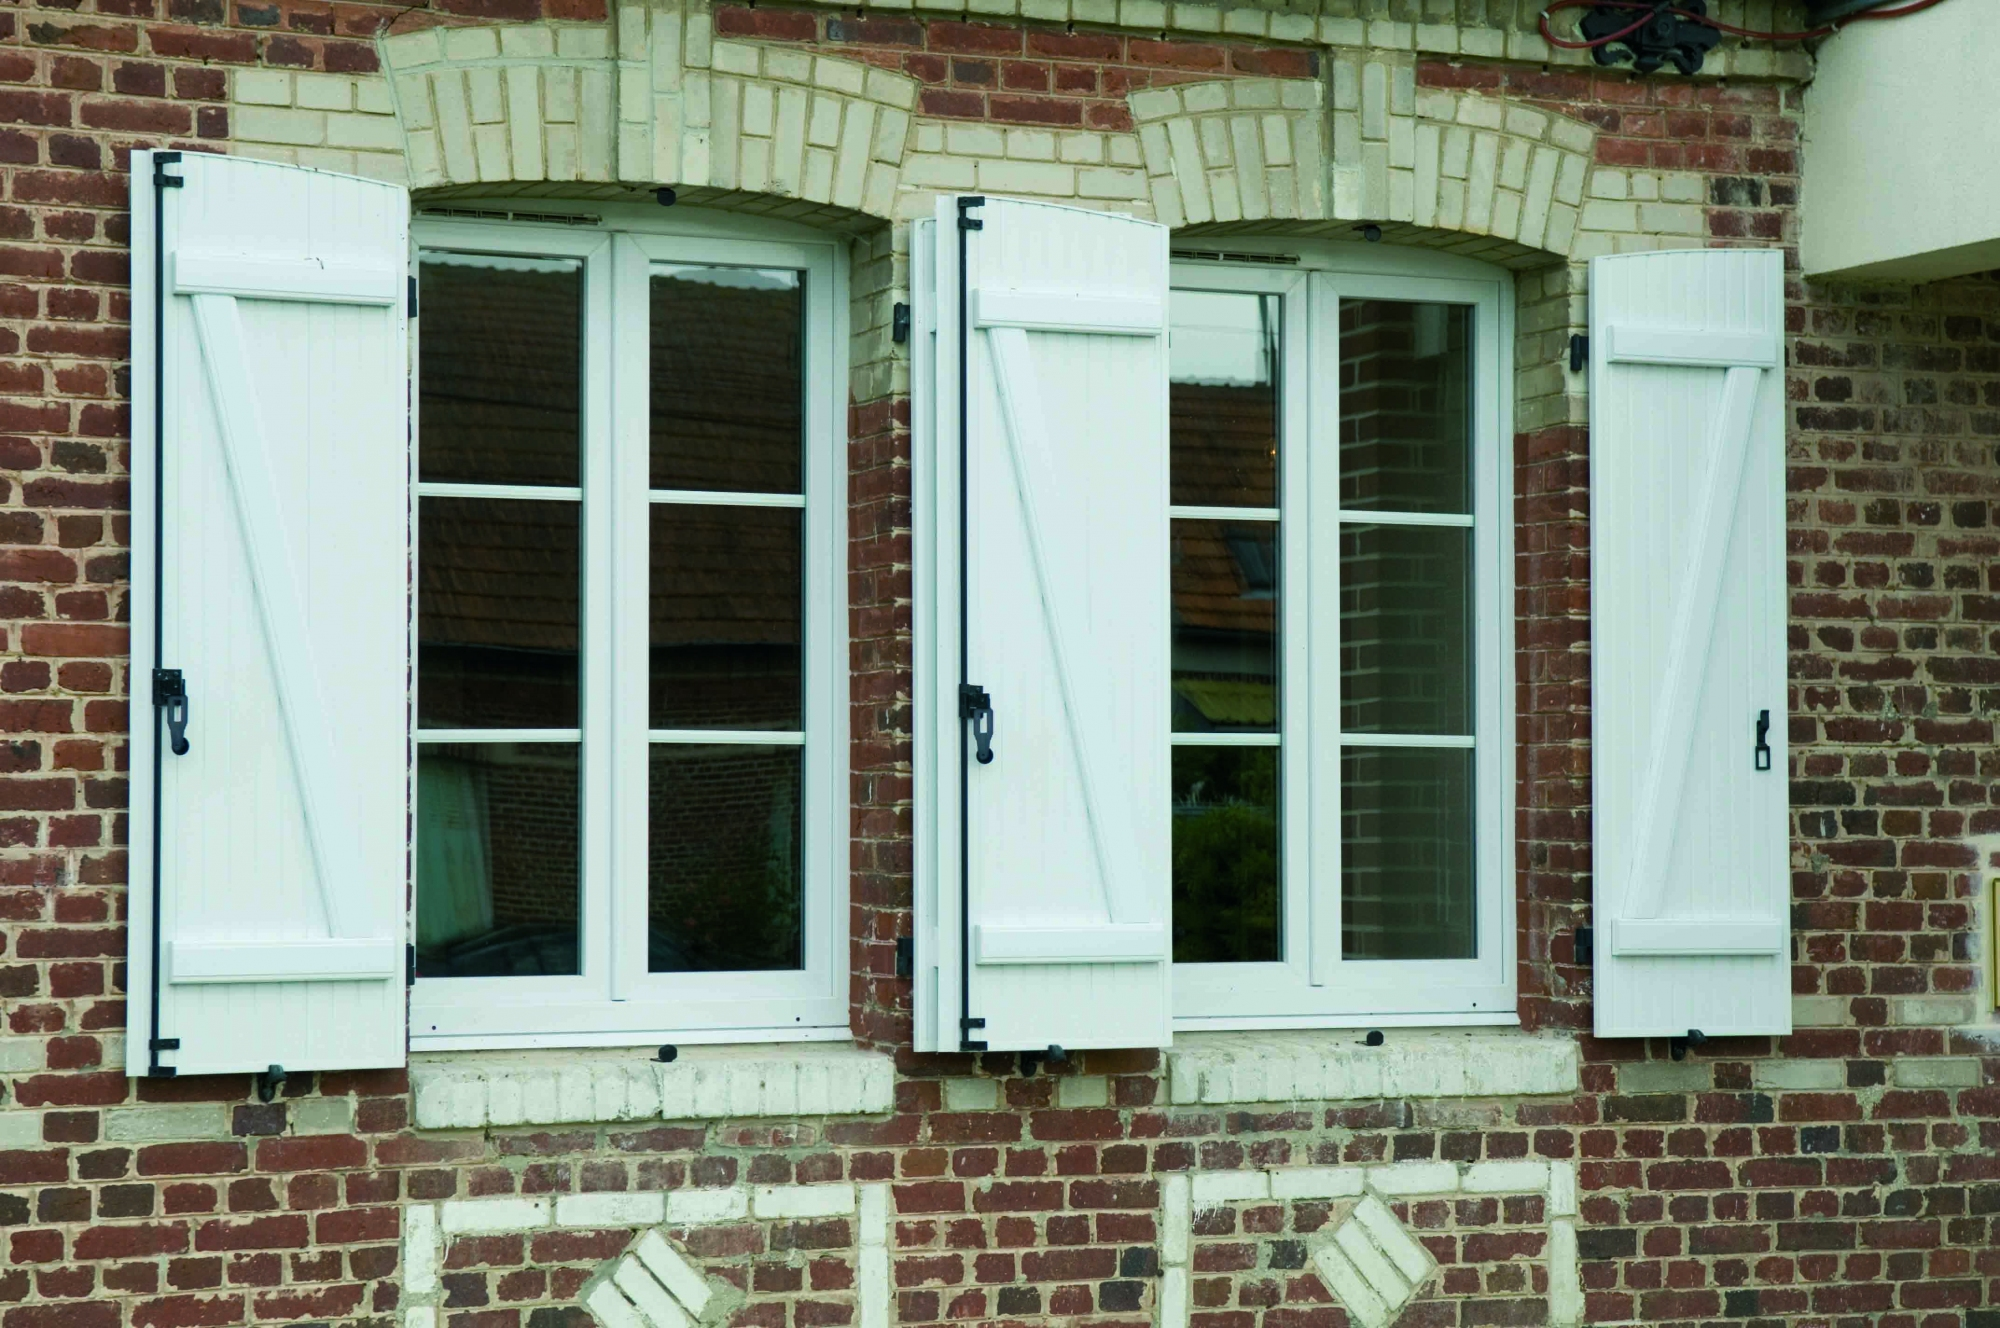 Fenetre pvc renovation sur mesure for Fenetre pvc sur mesure